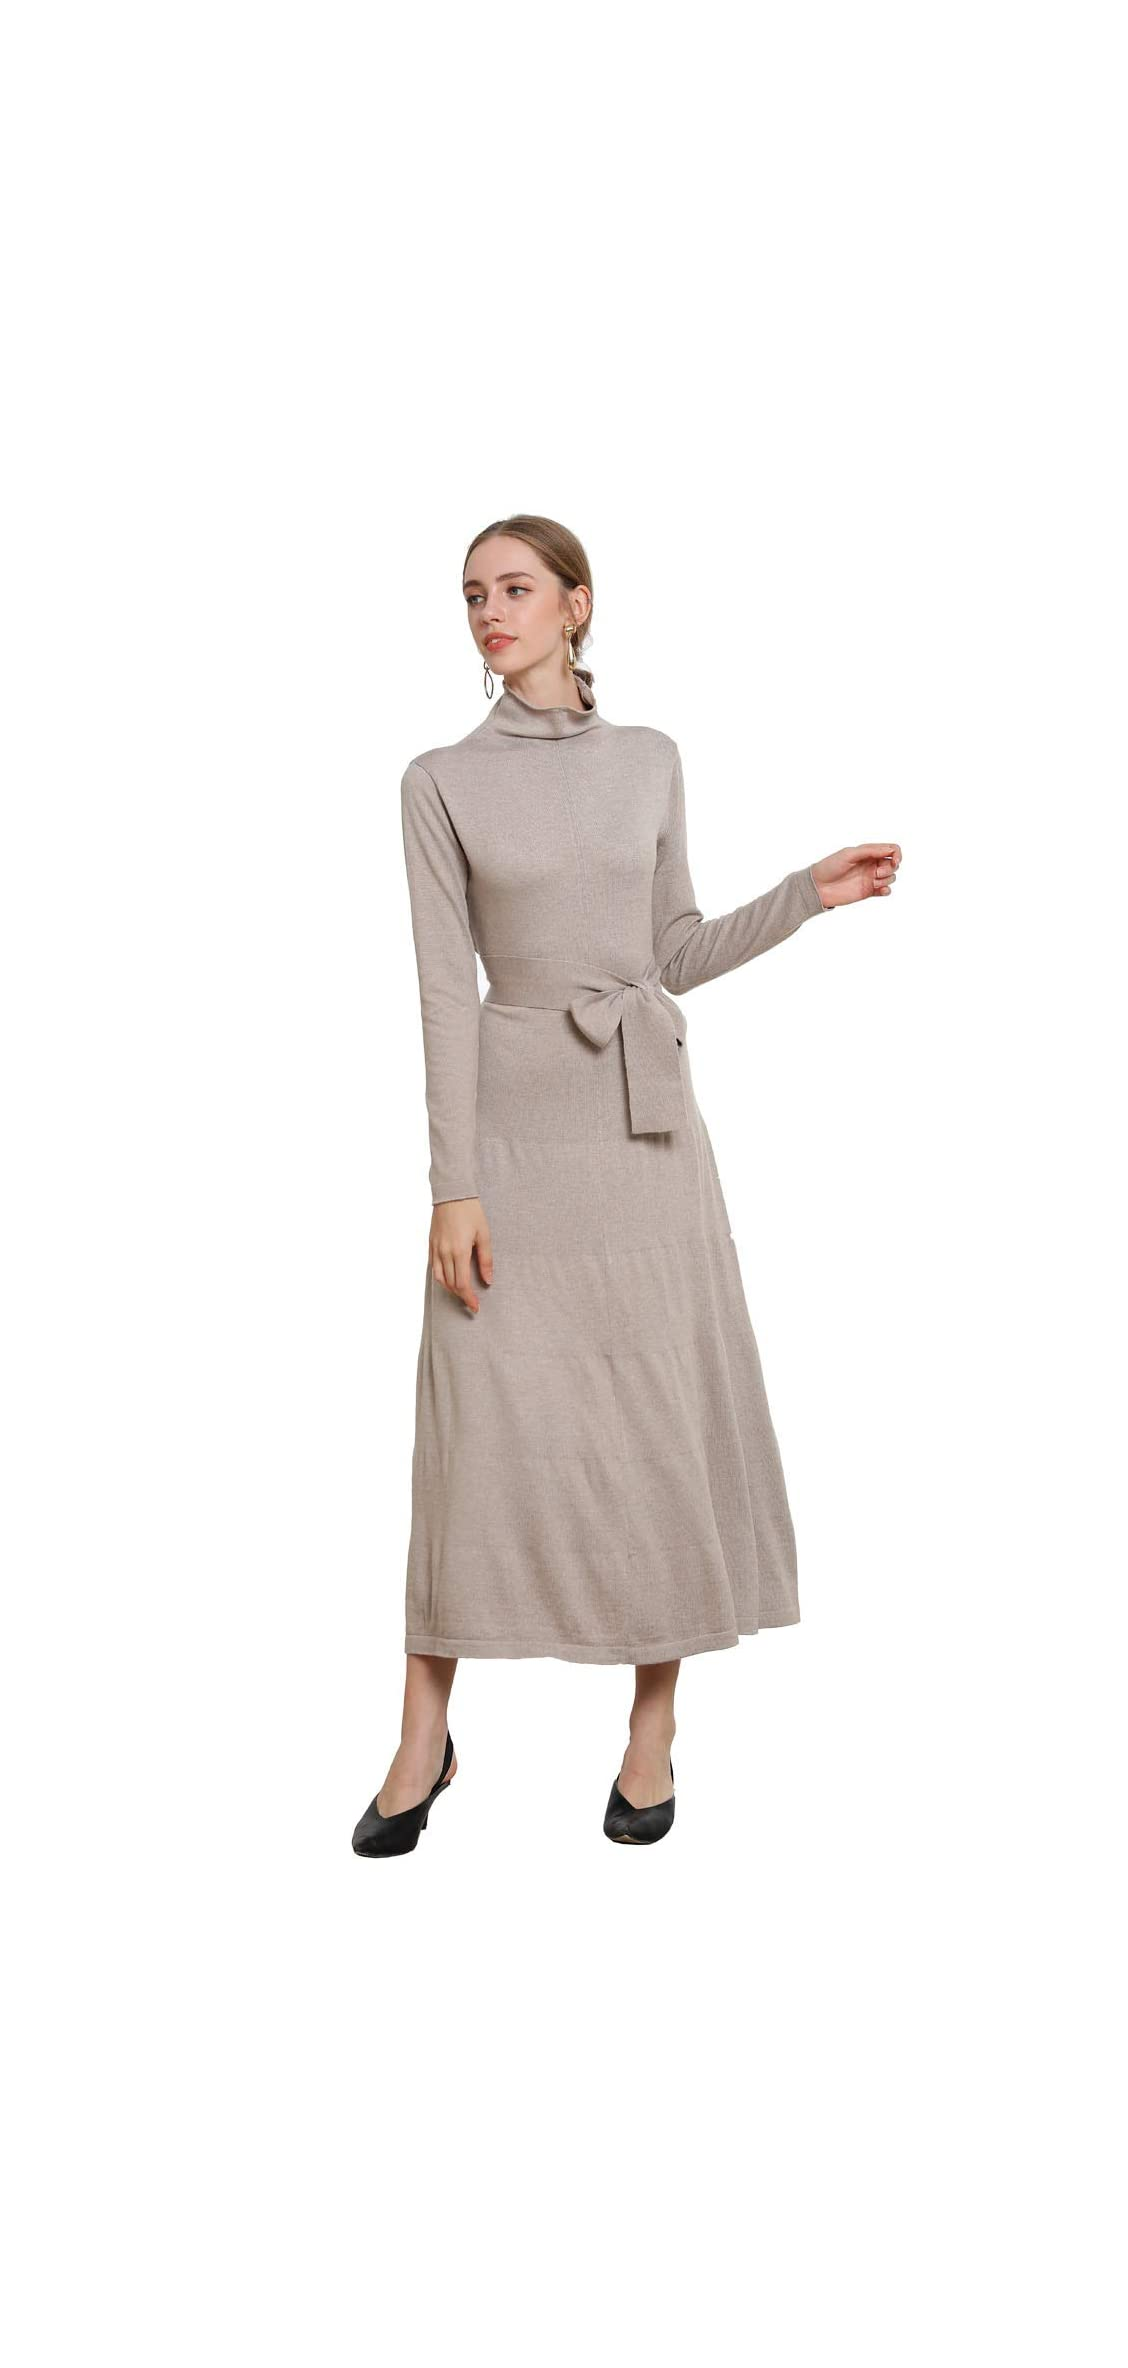 Cashmere Sweater Dress Long Maxi Turtleneck Flowy Pleated With